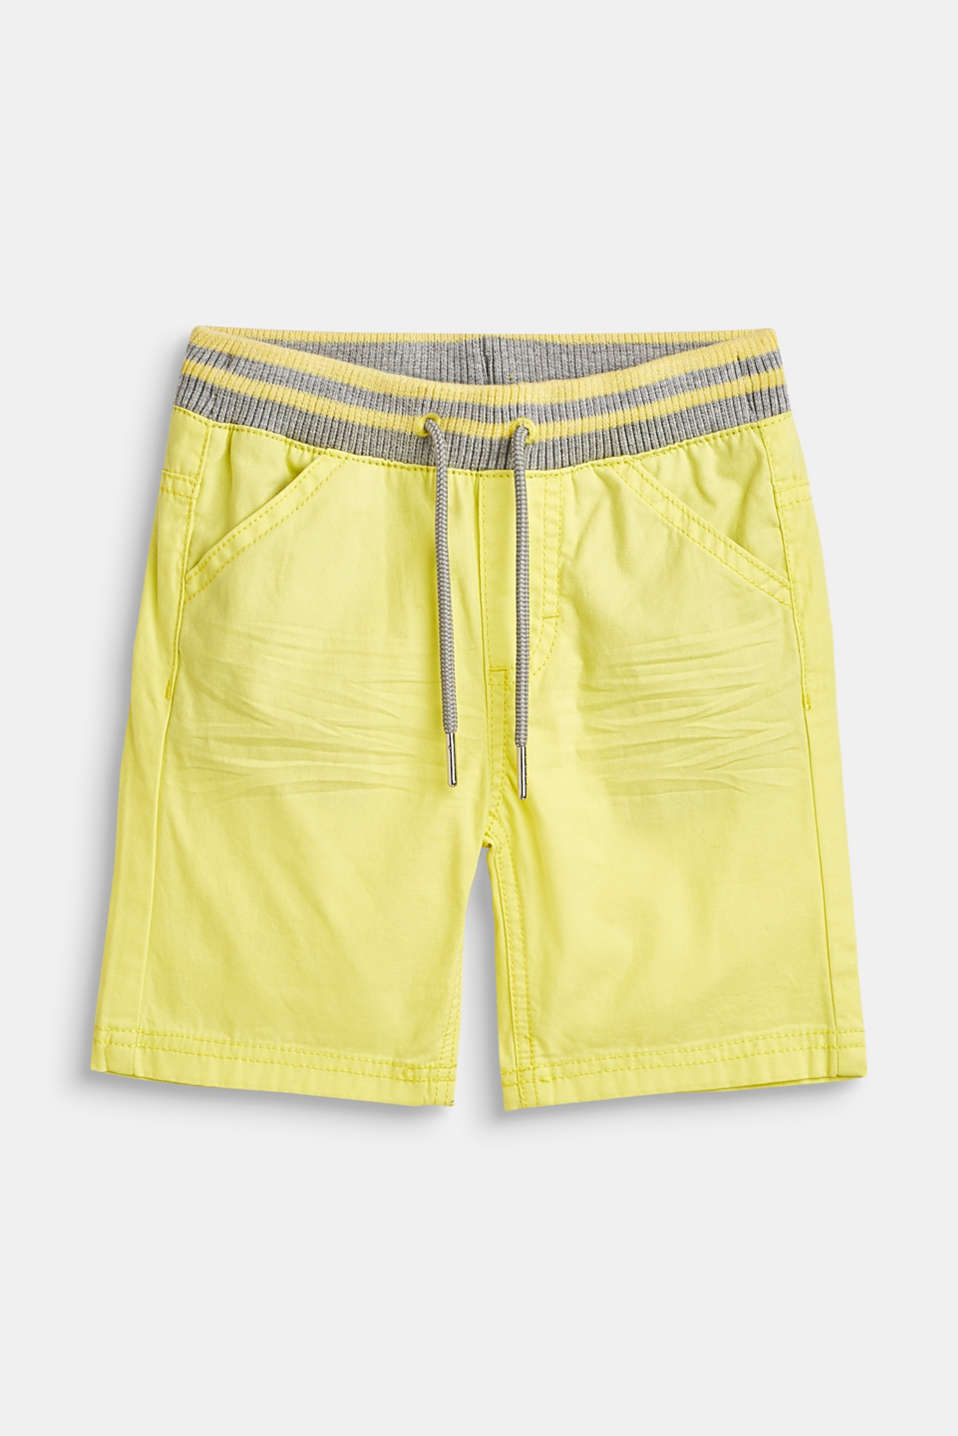 Esprit - Woven shorts with elasticated, rib knit waistband